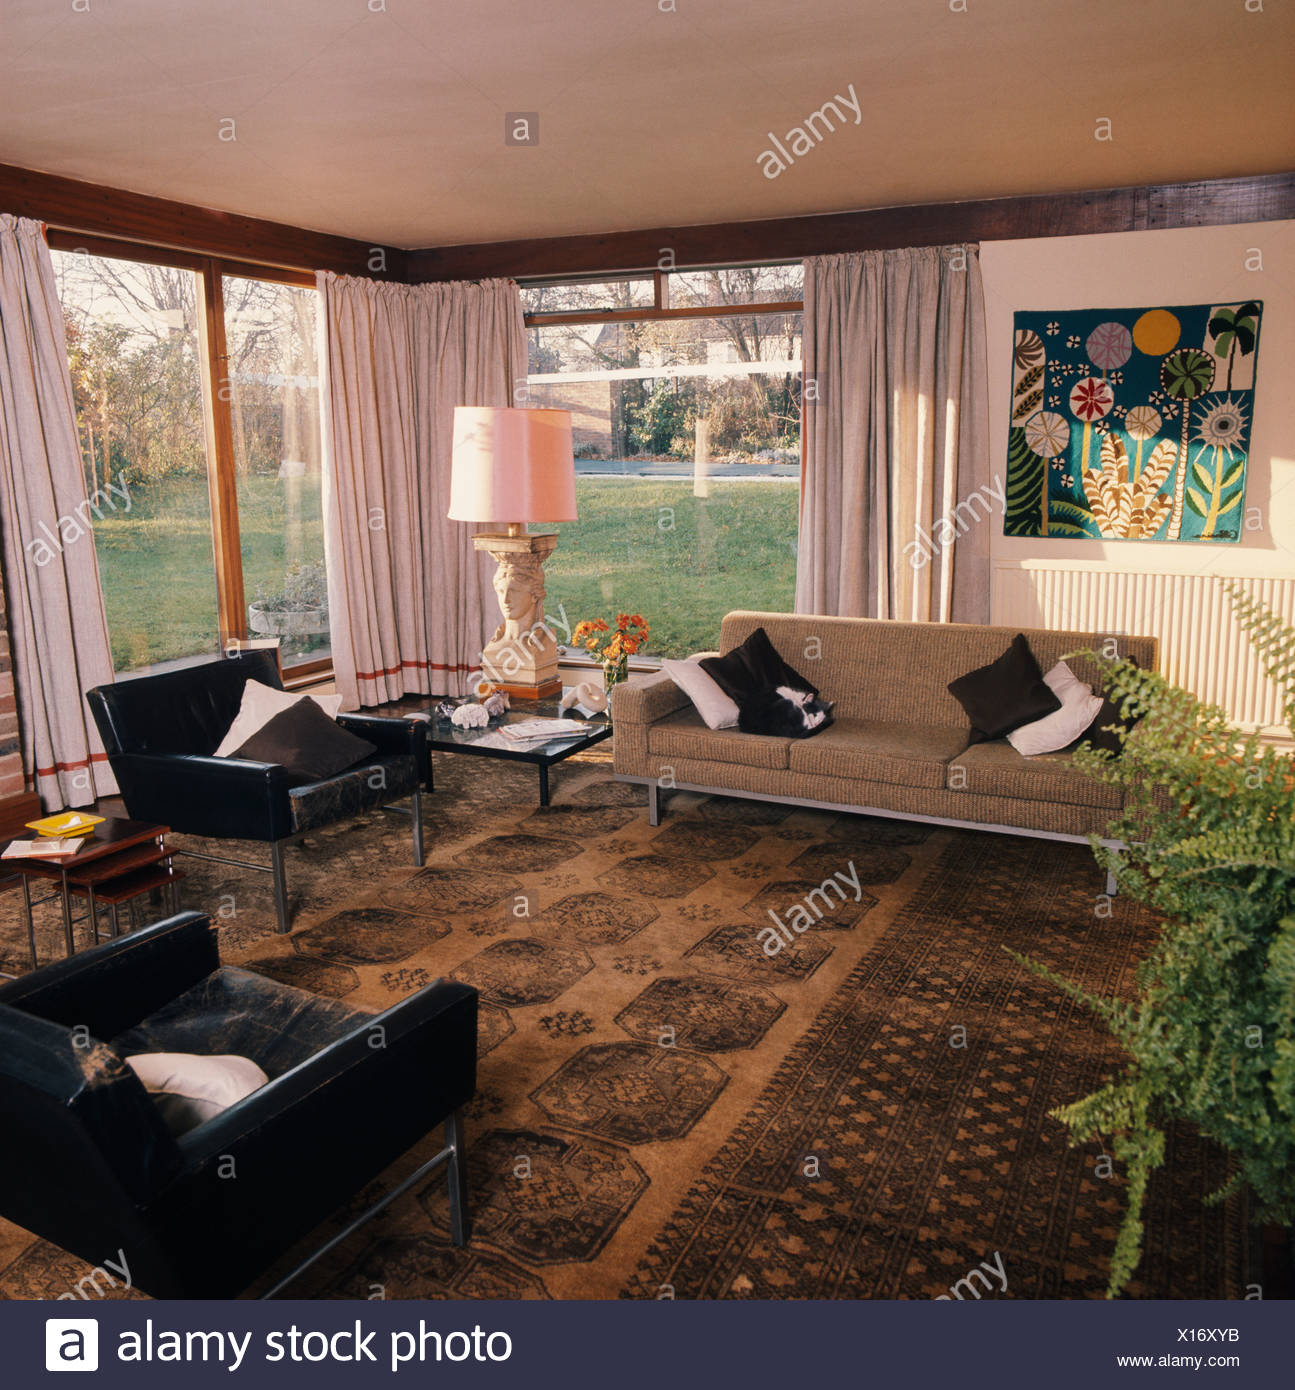 Black Leather Armchairs And Beige Sofa In Sixties Living Room With Brown Oriental Carpet And White Curtains On Large Windows Stock Photo Alamy